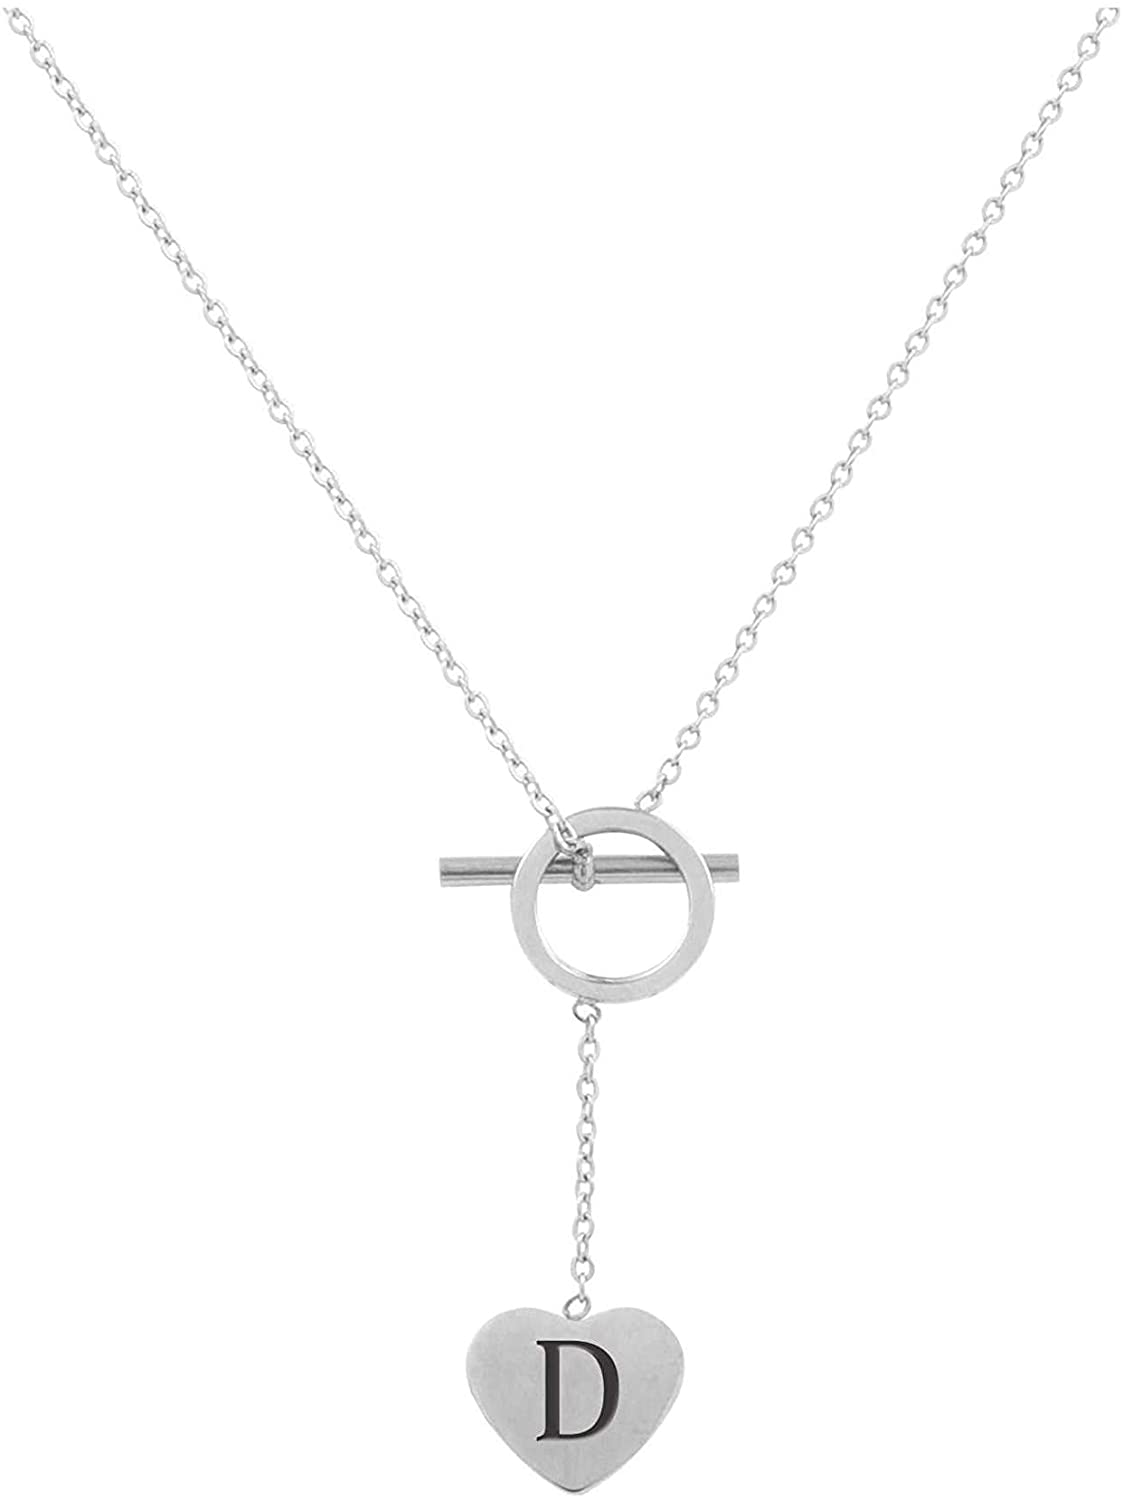 Pink Box Heart Lariat Initial Necklace D - Silver